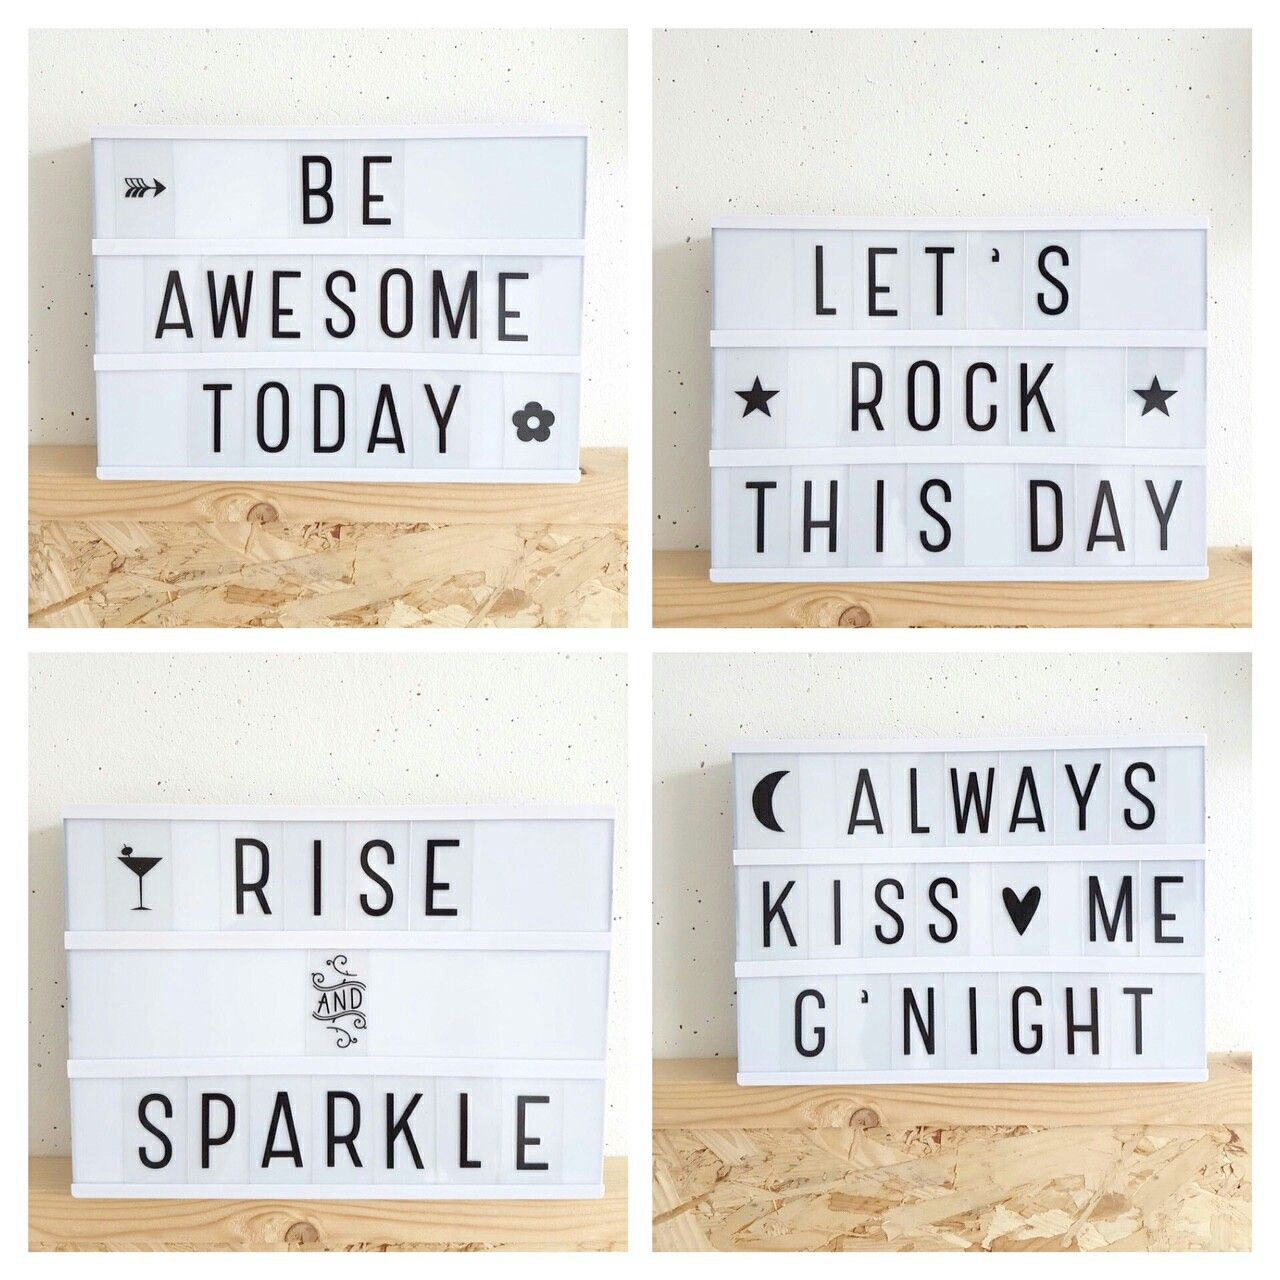 Lightbox Quotes Pin By Karoliina Aho On Home Pinterest Lightbox